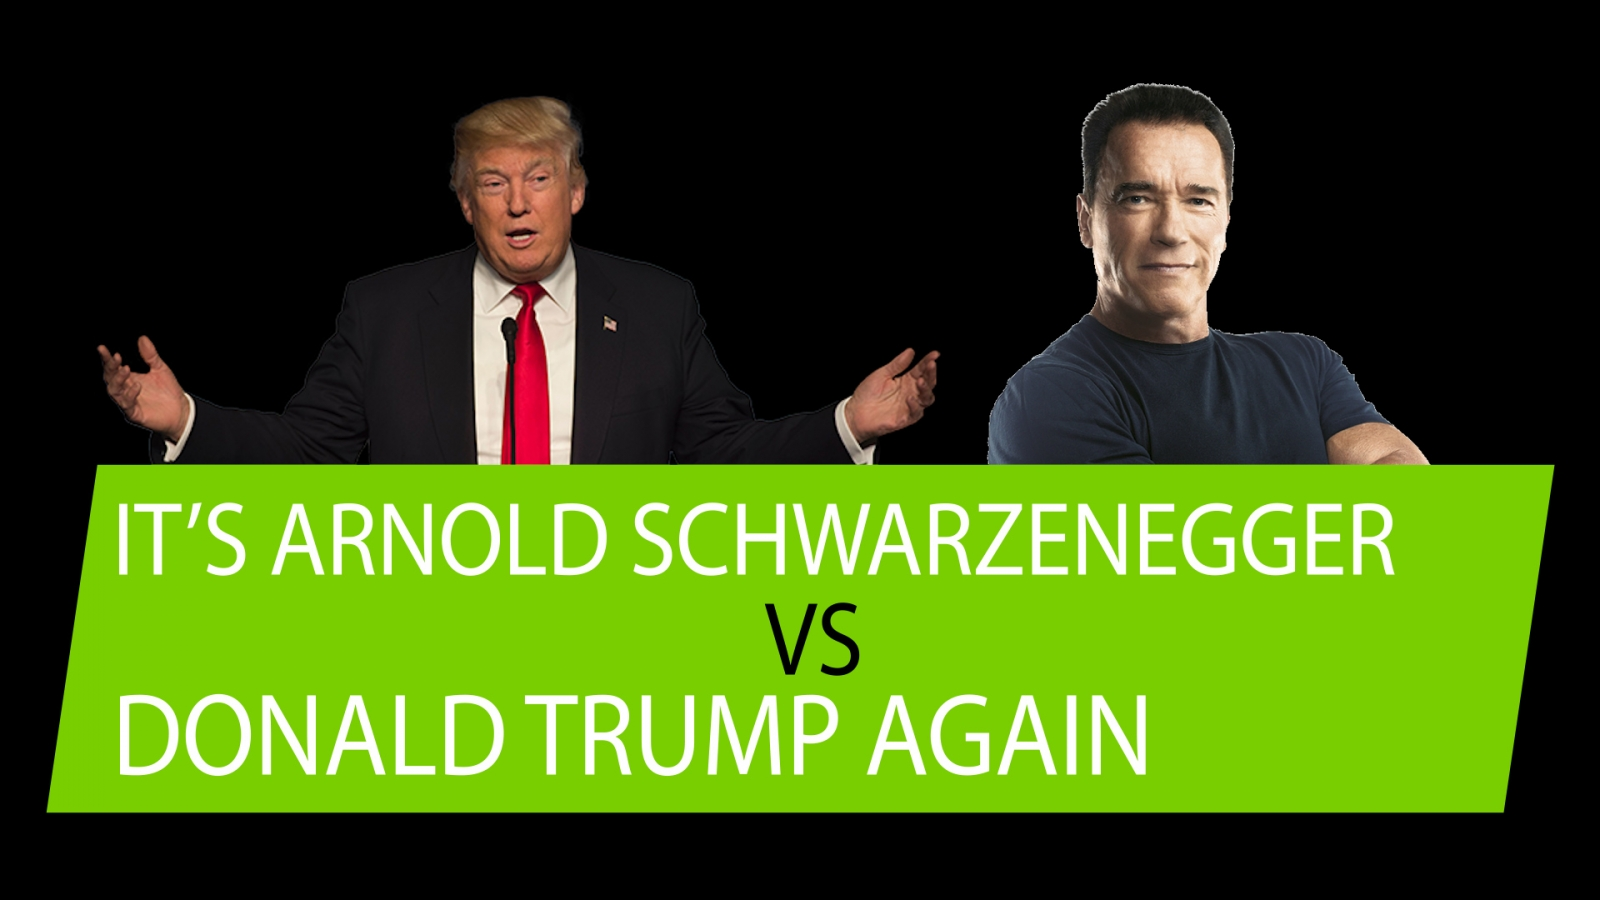 Arnold Schwarzenegger ramps up his feud with Donald Trump again